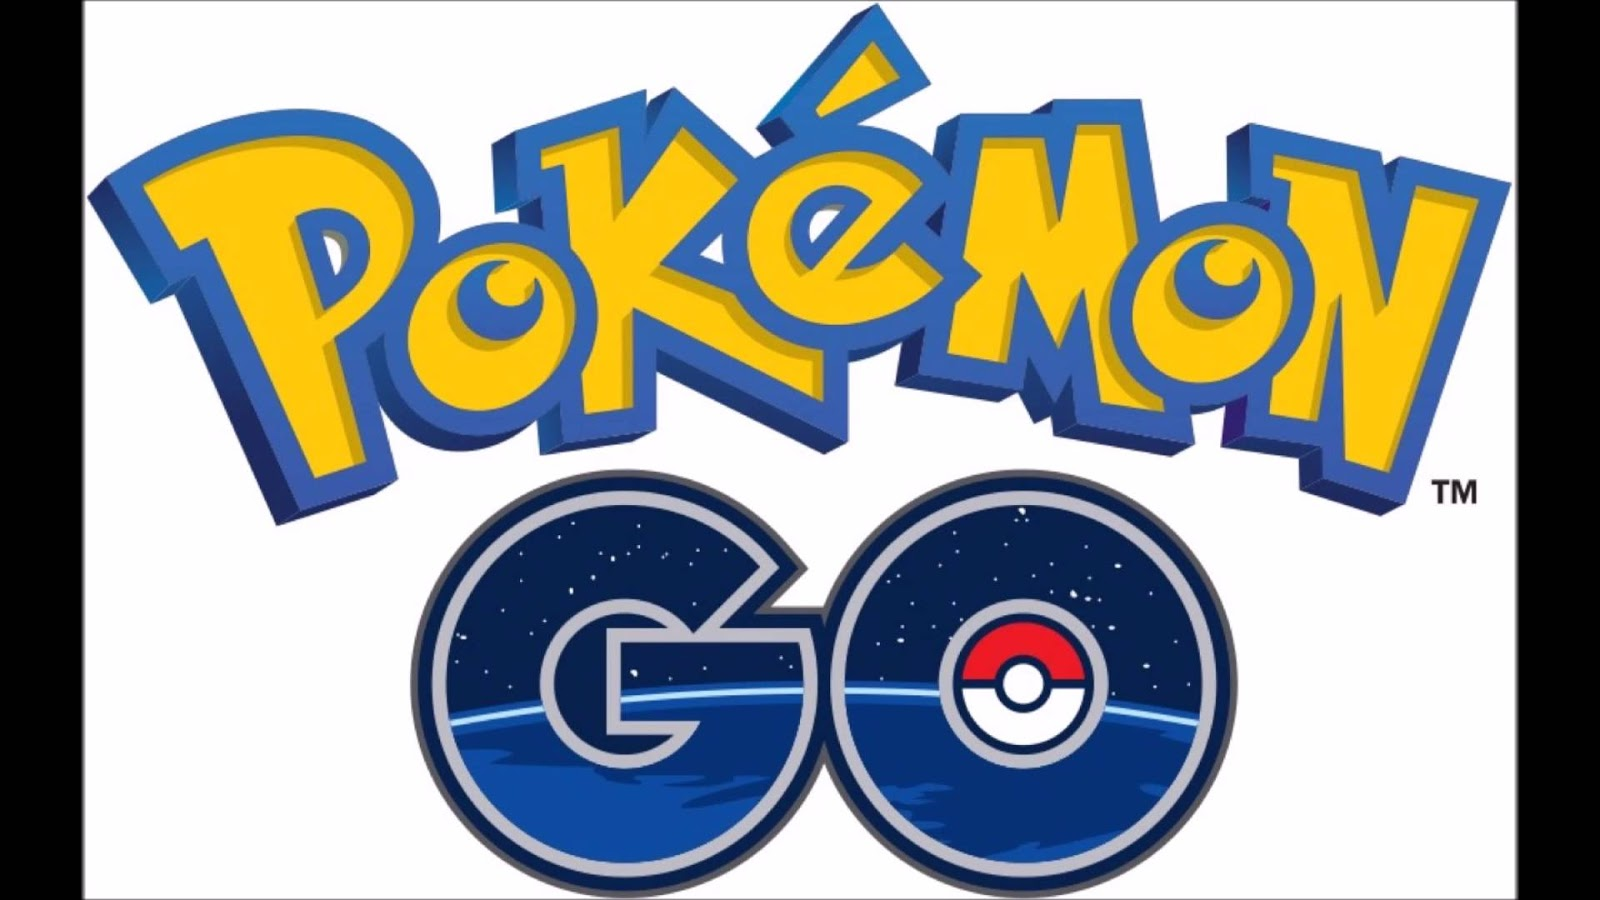 Come resettare Pokemon GO e iniziare con Pikachu come pokemon starter